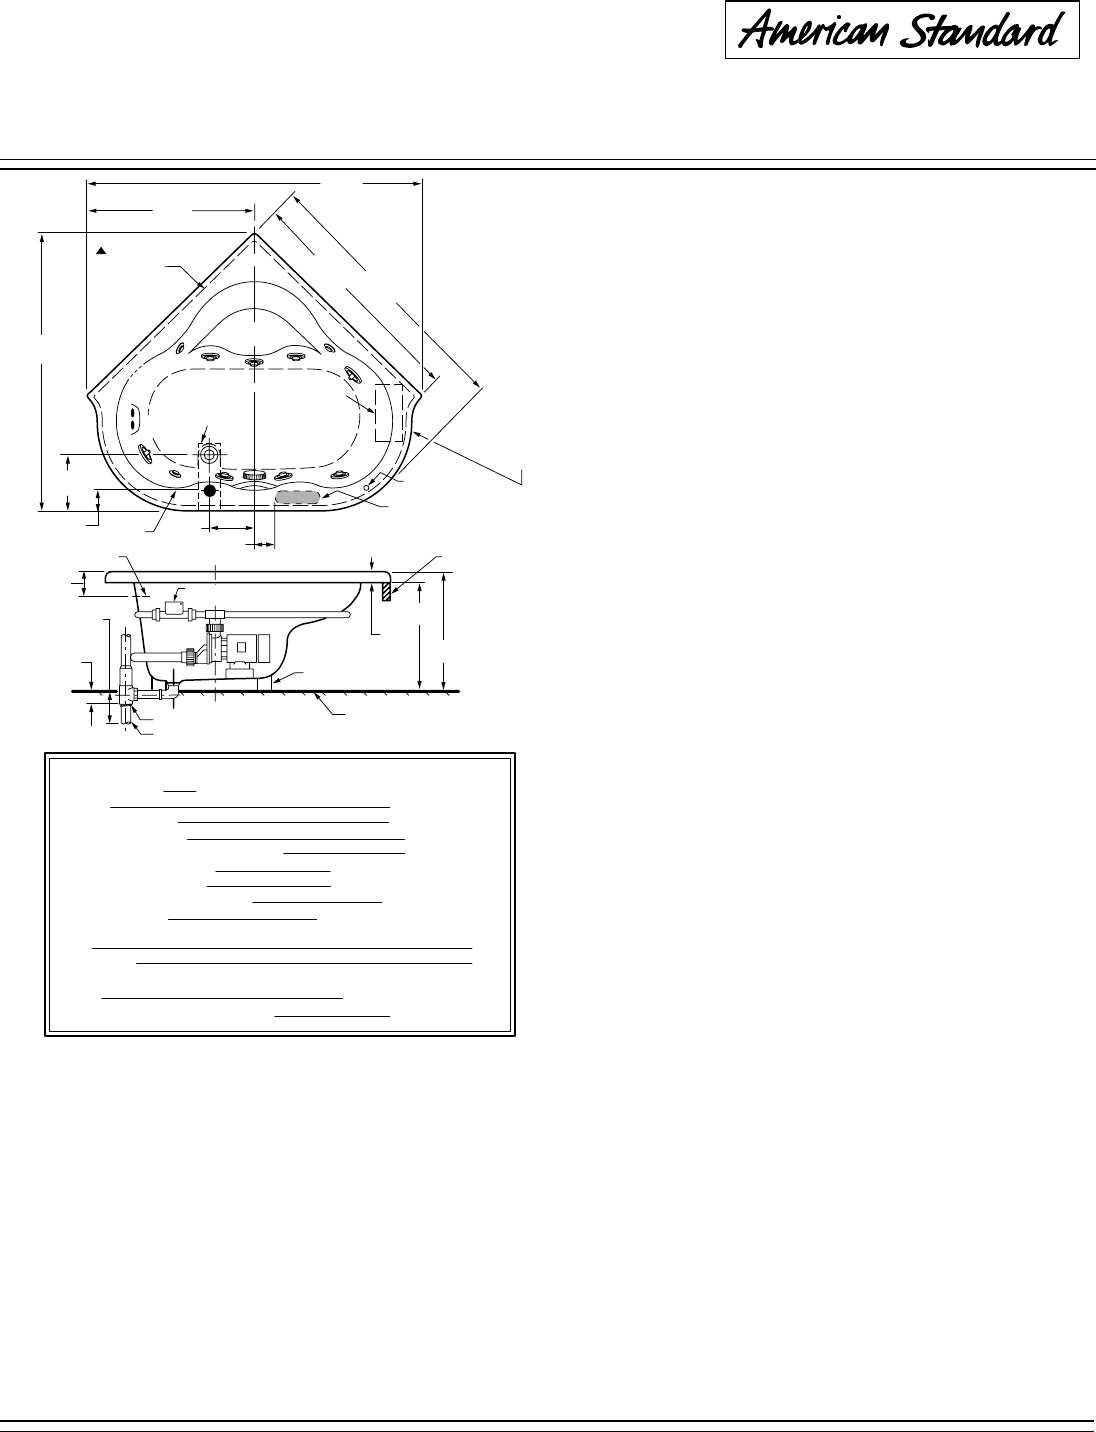 Hot Tub Specification Manual Guide